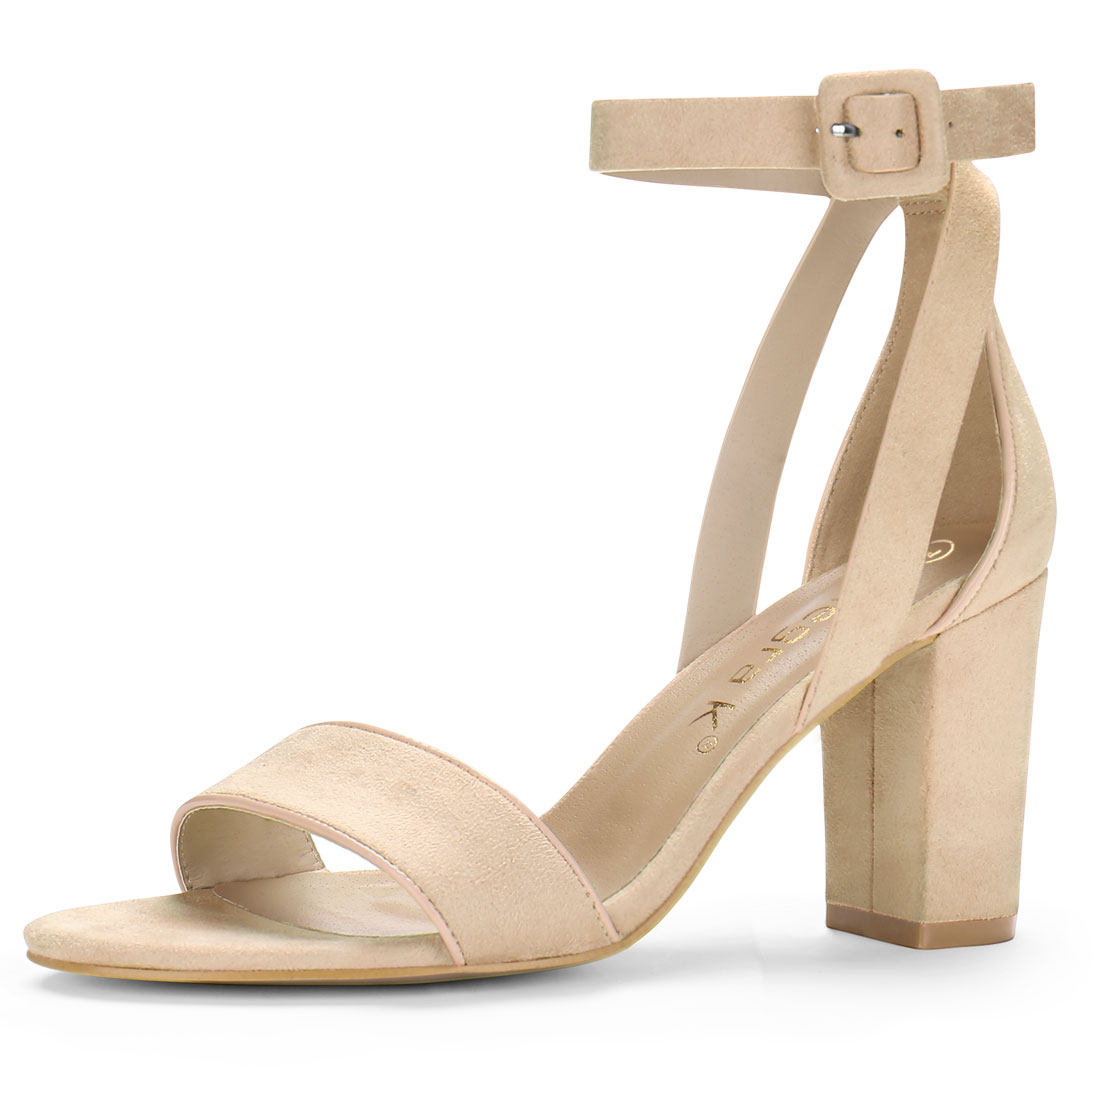 Women PU Panel Piped Chunky Heel Ankle Strap Sandals Beige US 10